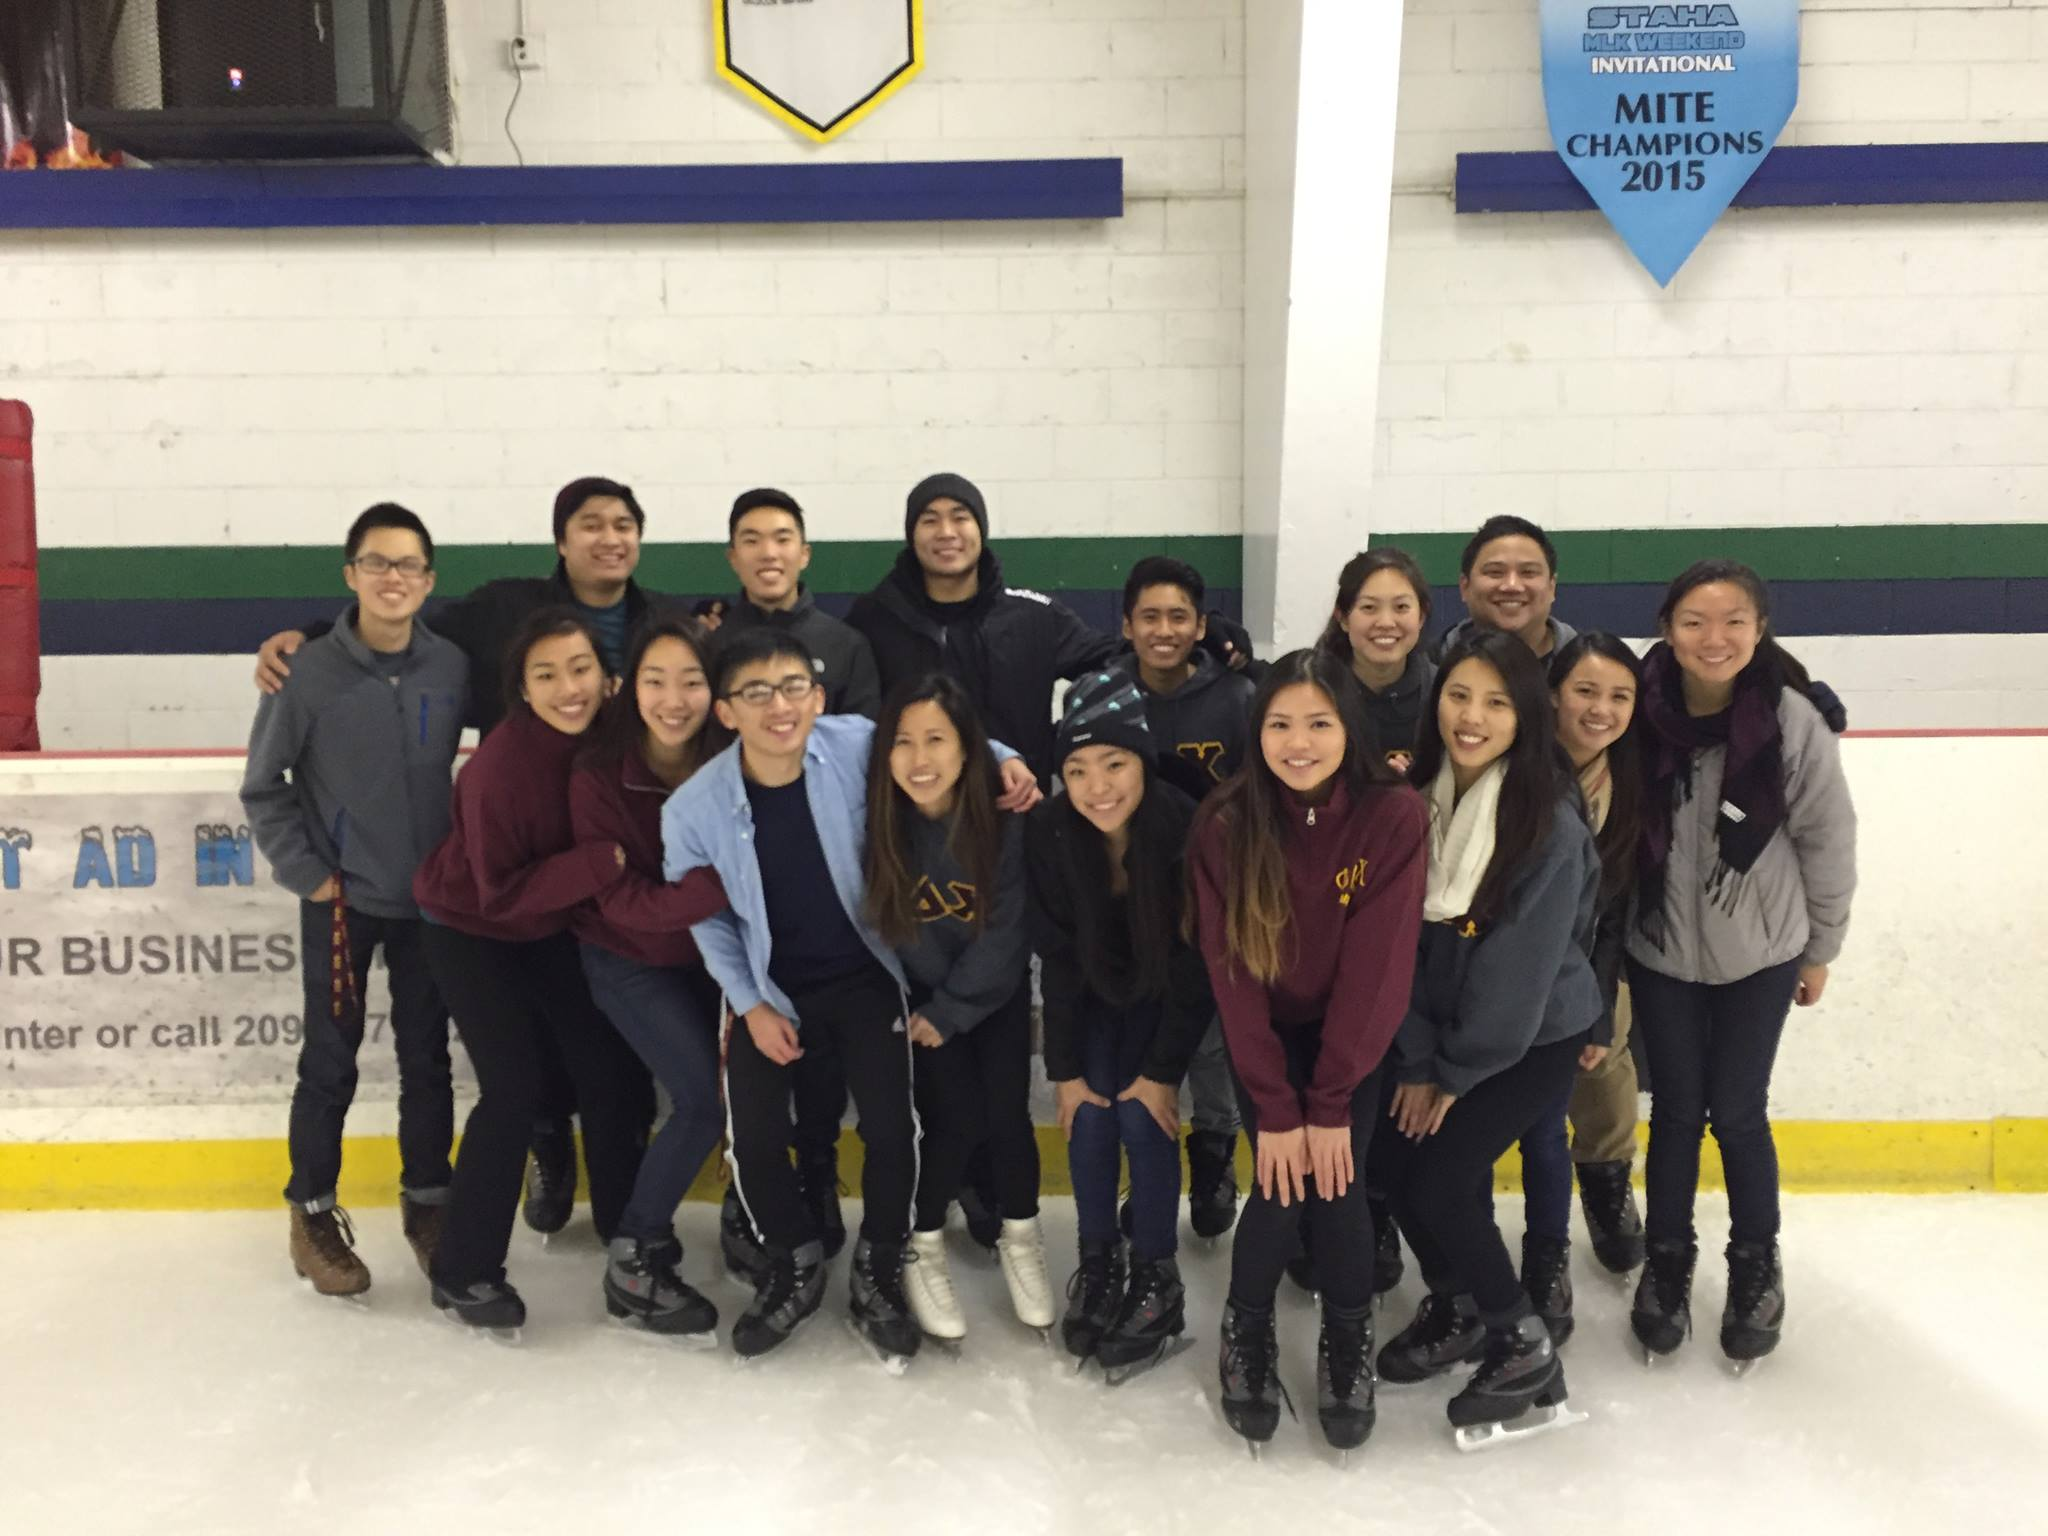 Ice Skating & Bonding